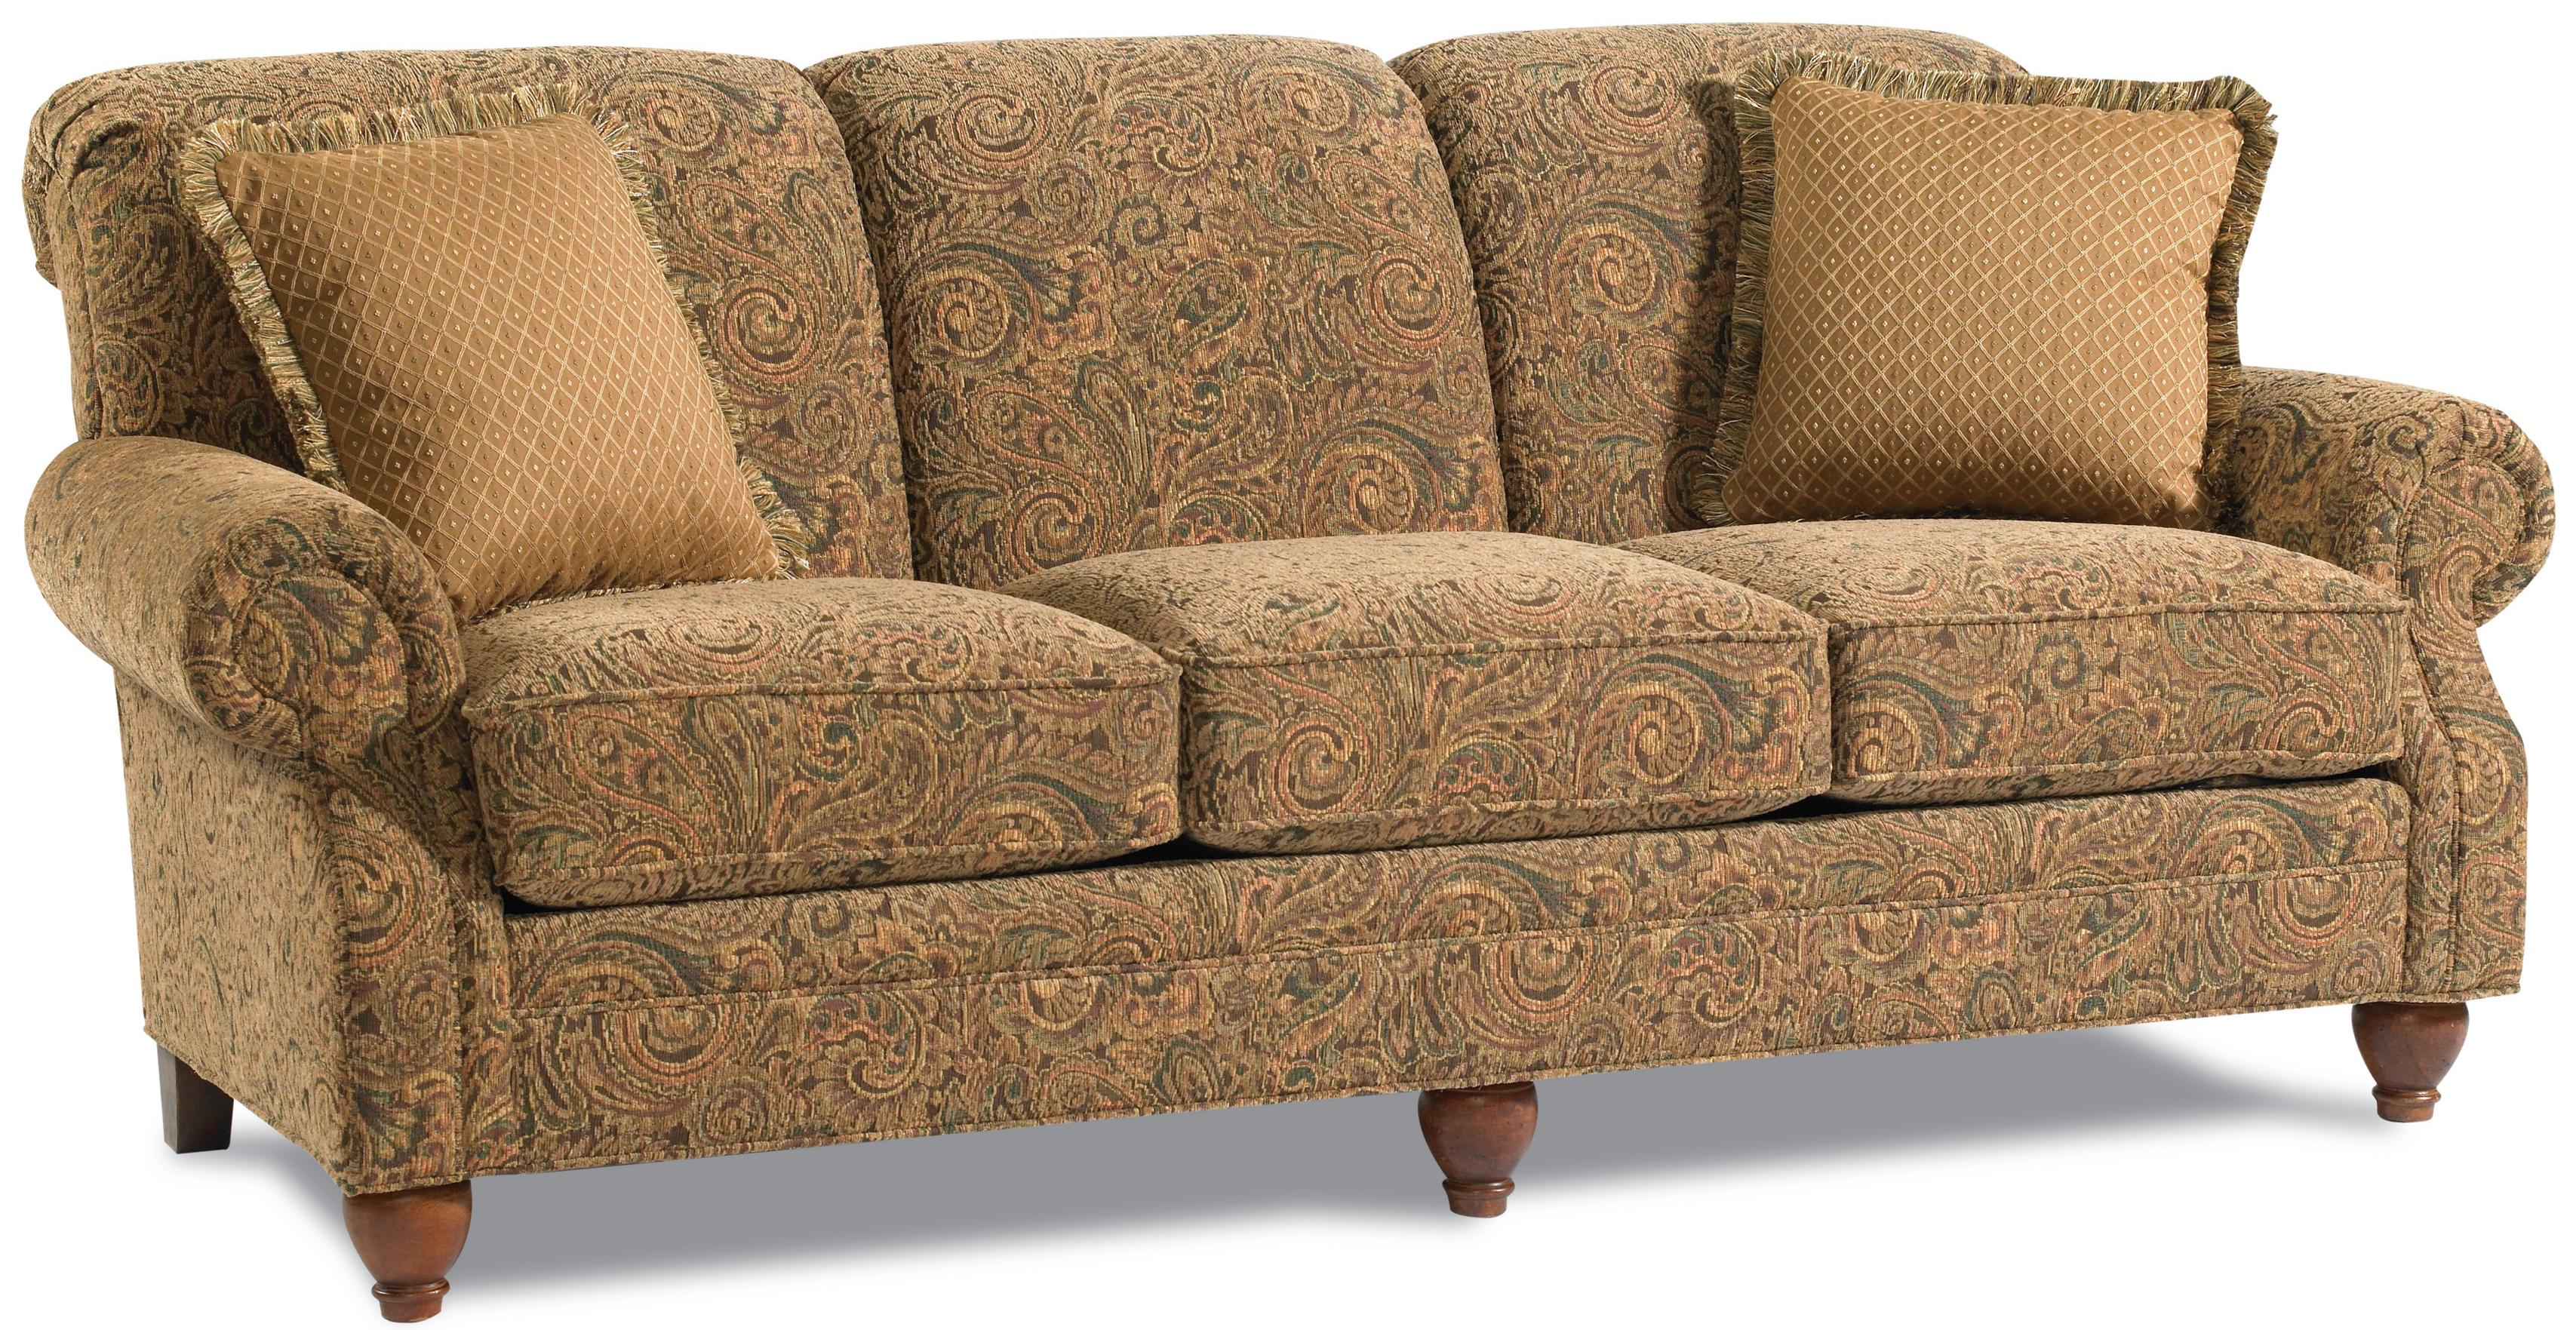 Clayton marcus sofas great clayton marcus sofa 12 for for Couch furniture